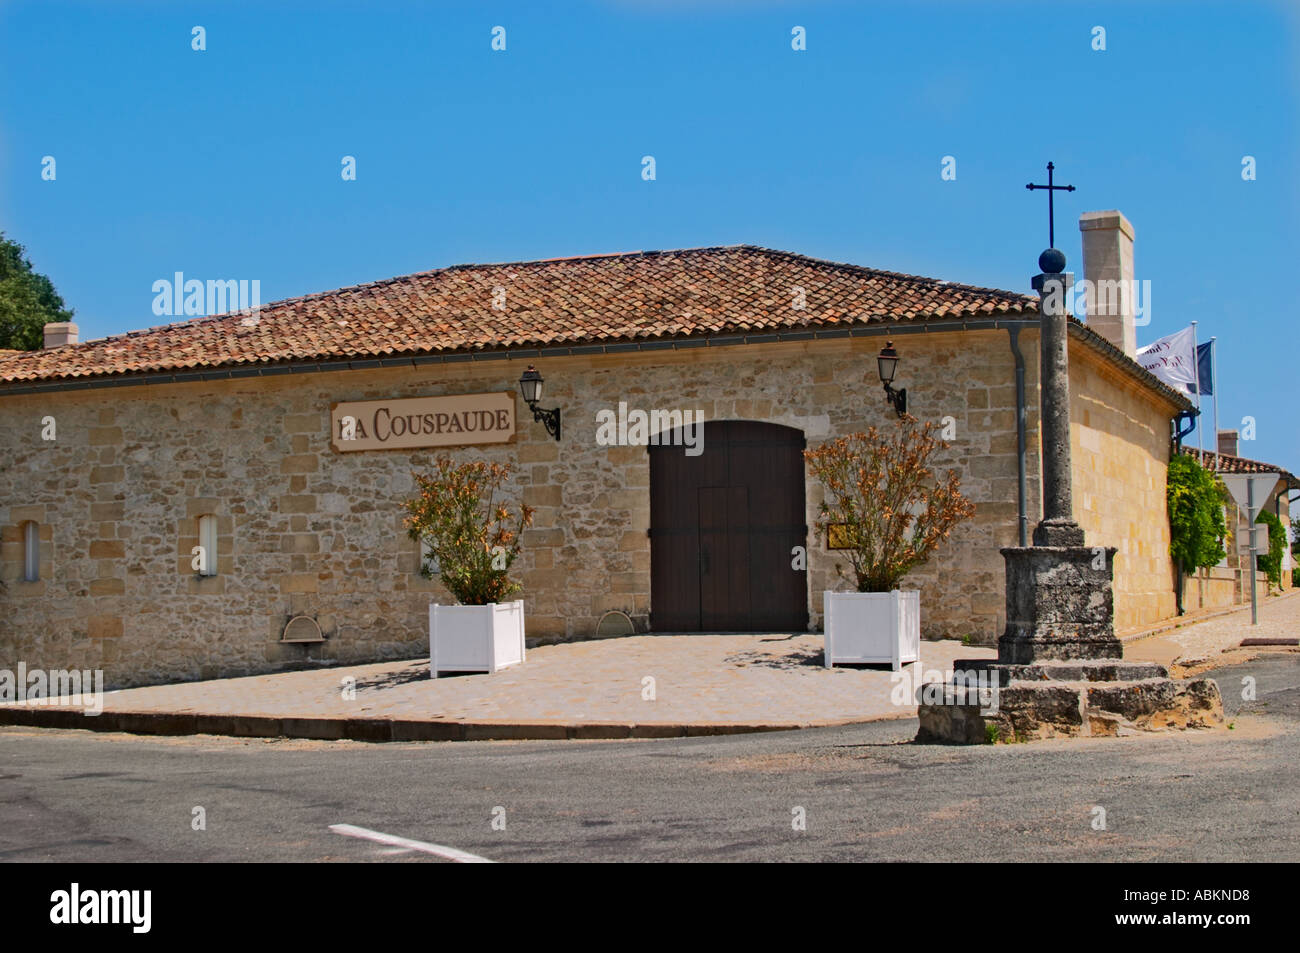 Chateau La Couspaude on a road crossing with a stone pillar and ...